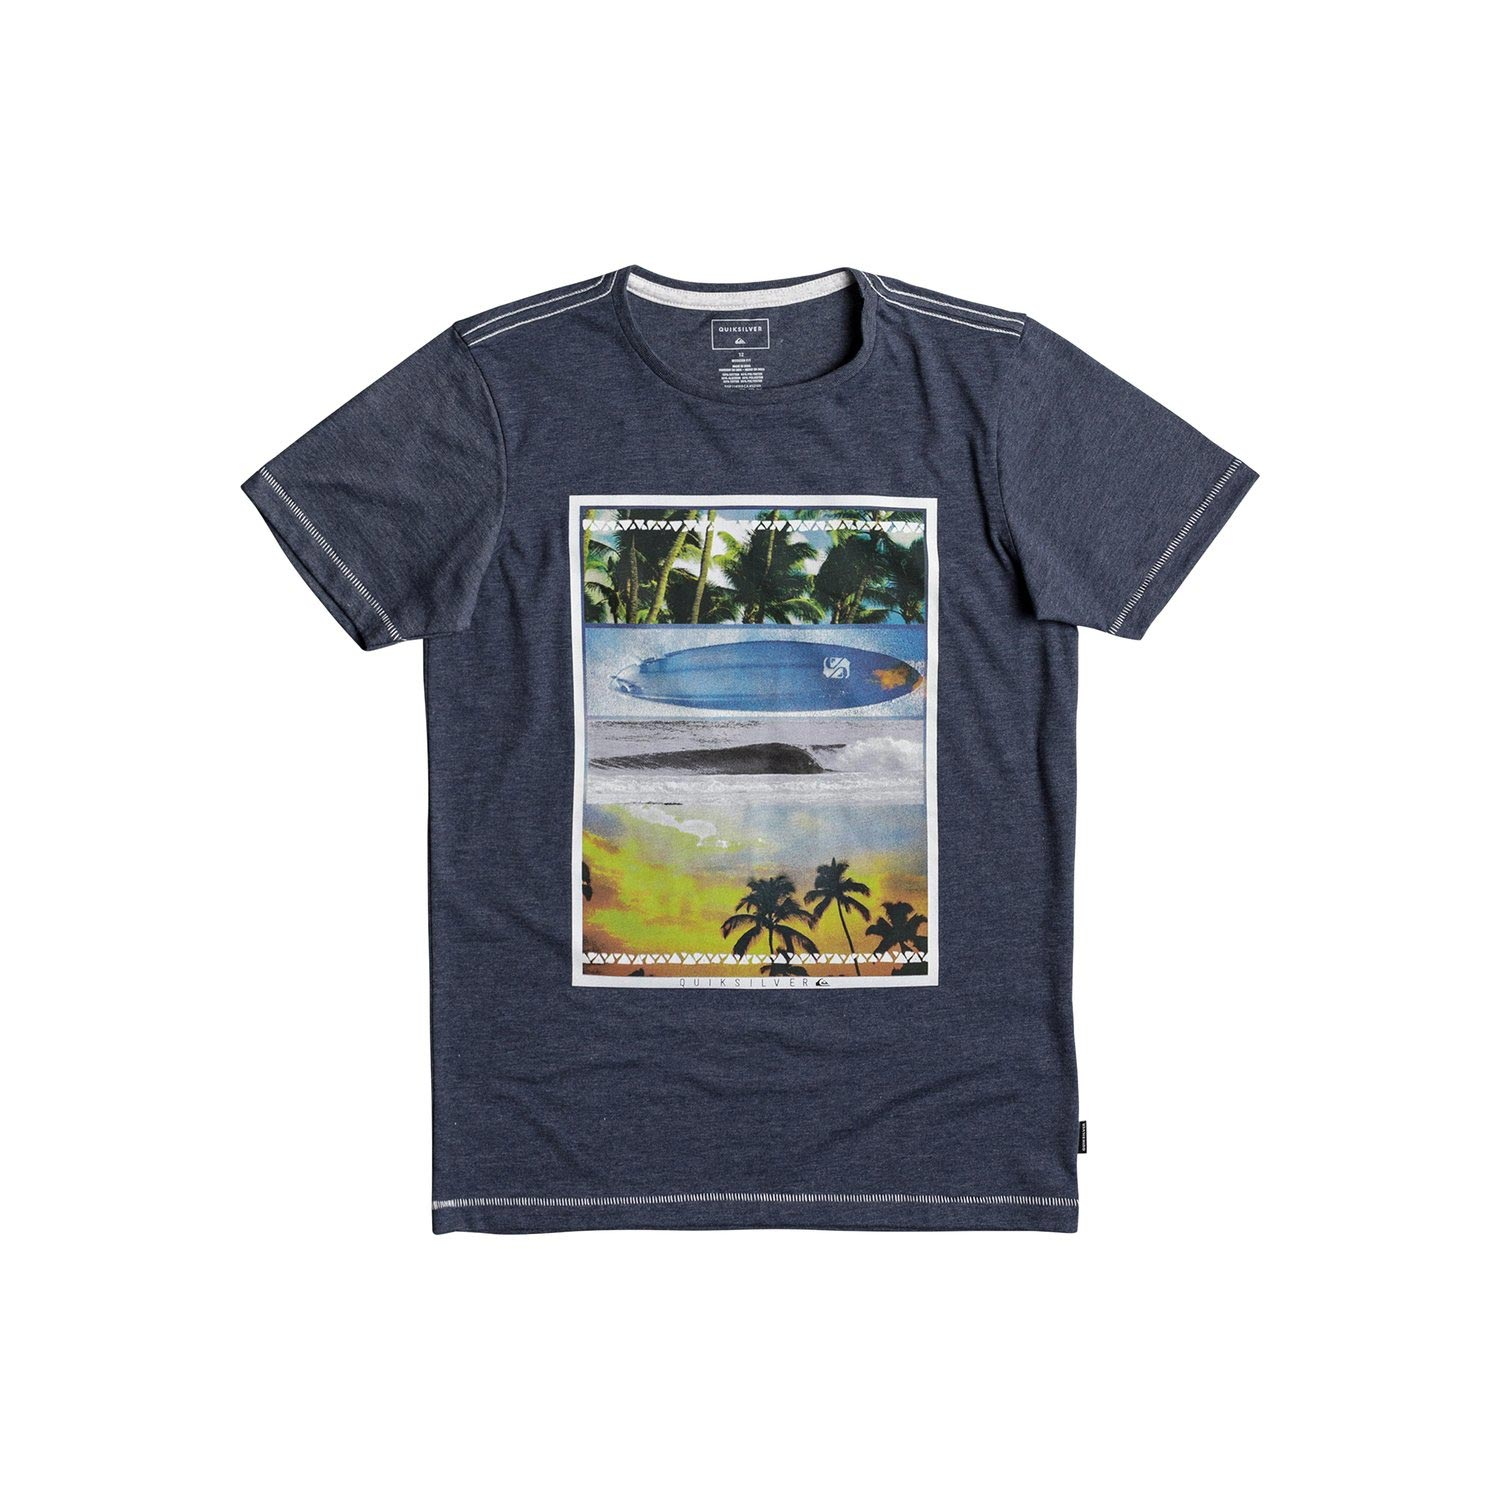 QUIKSILVER SS HEATHER TEE PLACE TO BE YOUTH EQBZT03692-BYJH Μπλε παιδι   ενδυματα   κοντομάνικα